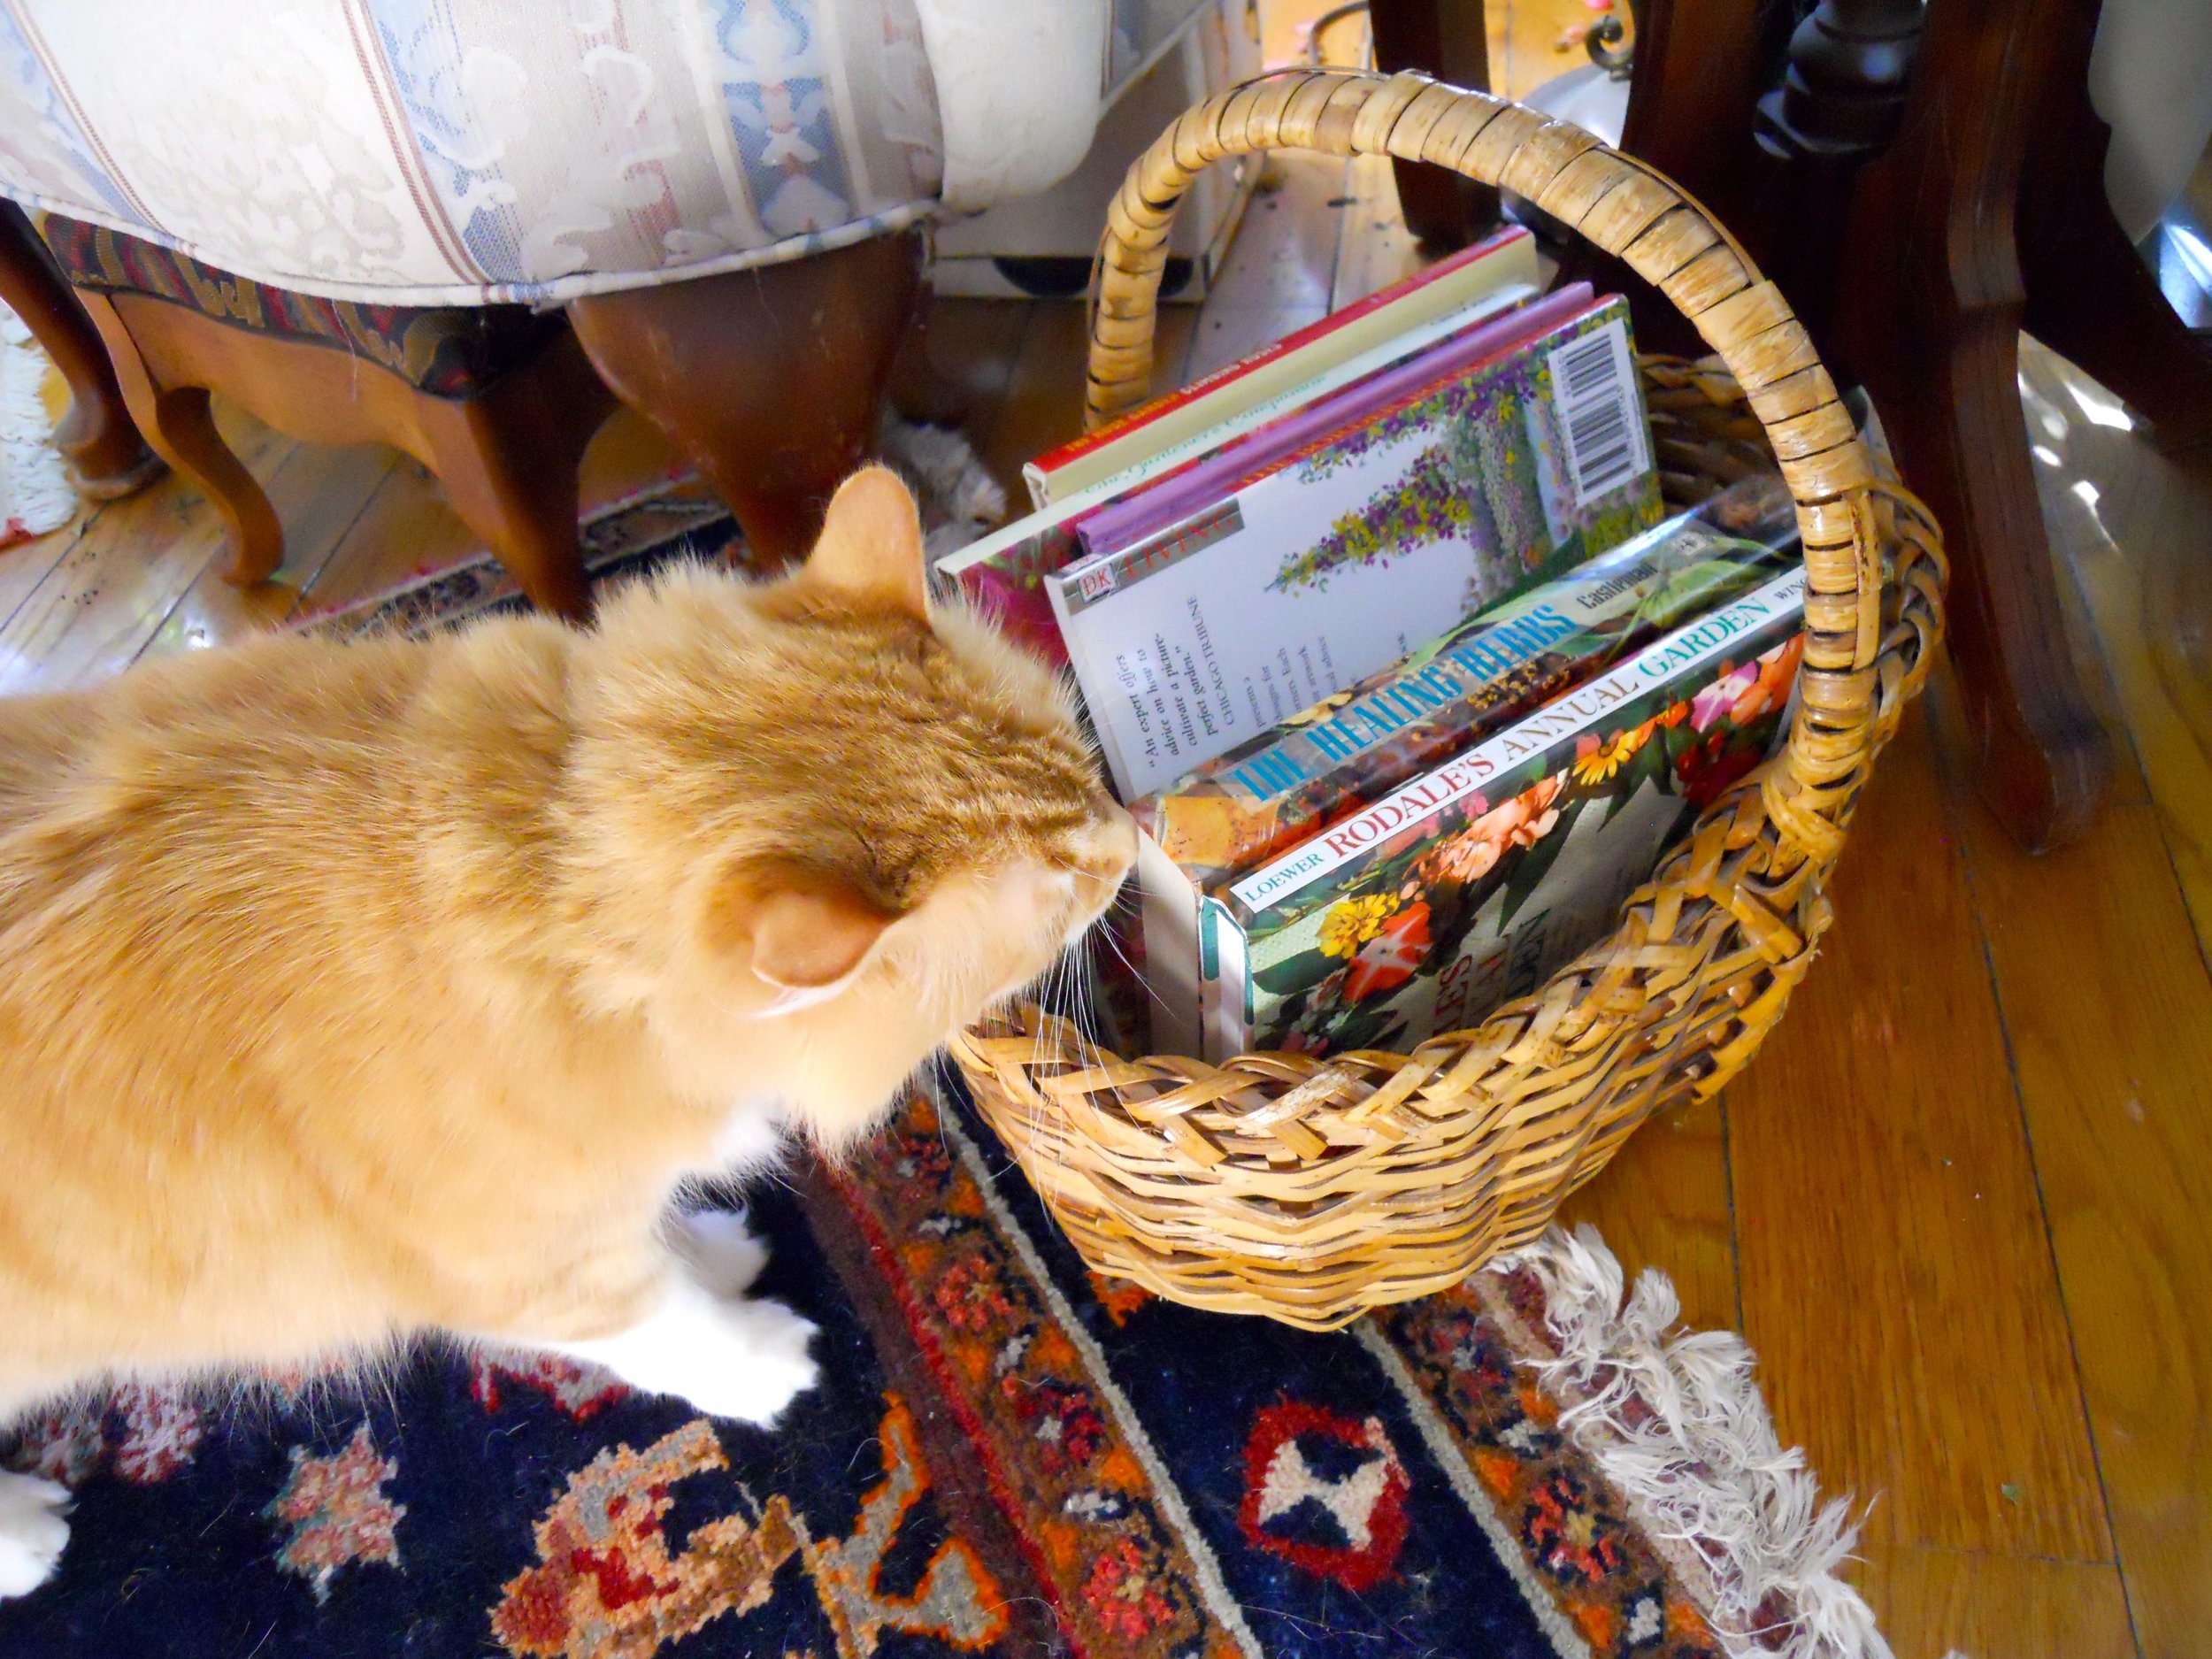 Shirley Honey seems to be checking my reading options in this basket.